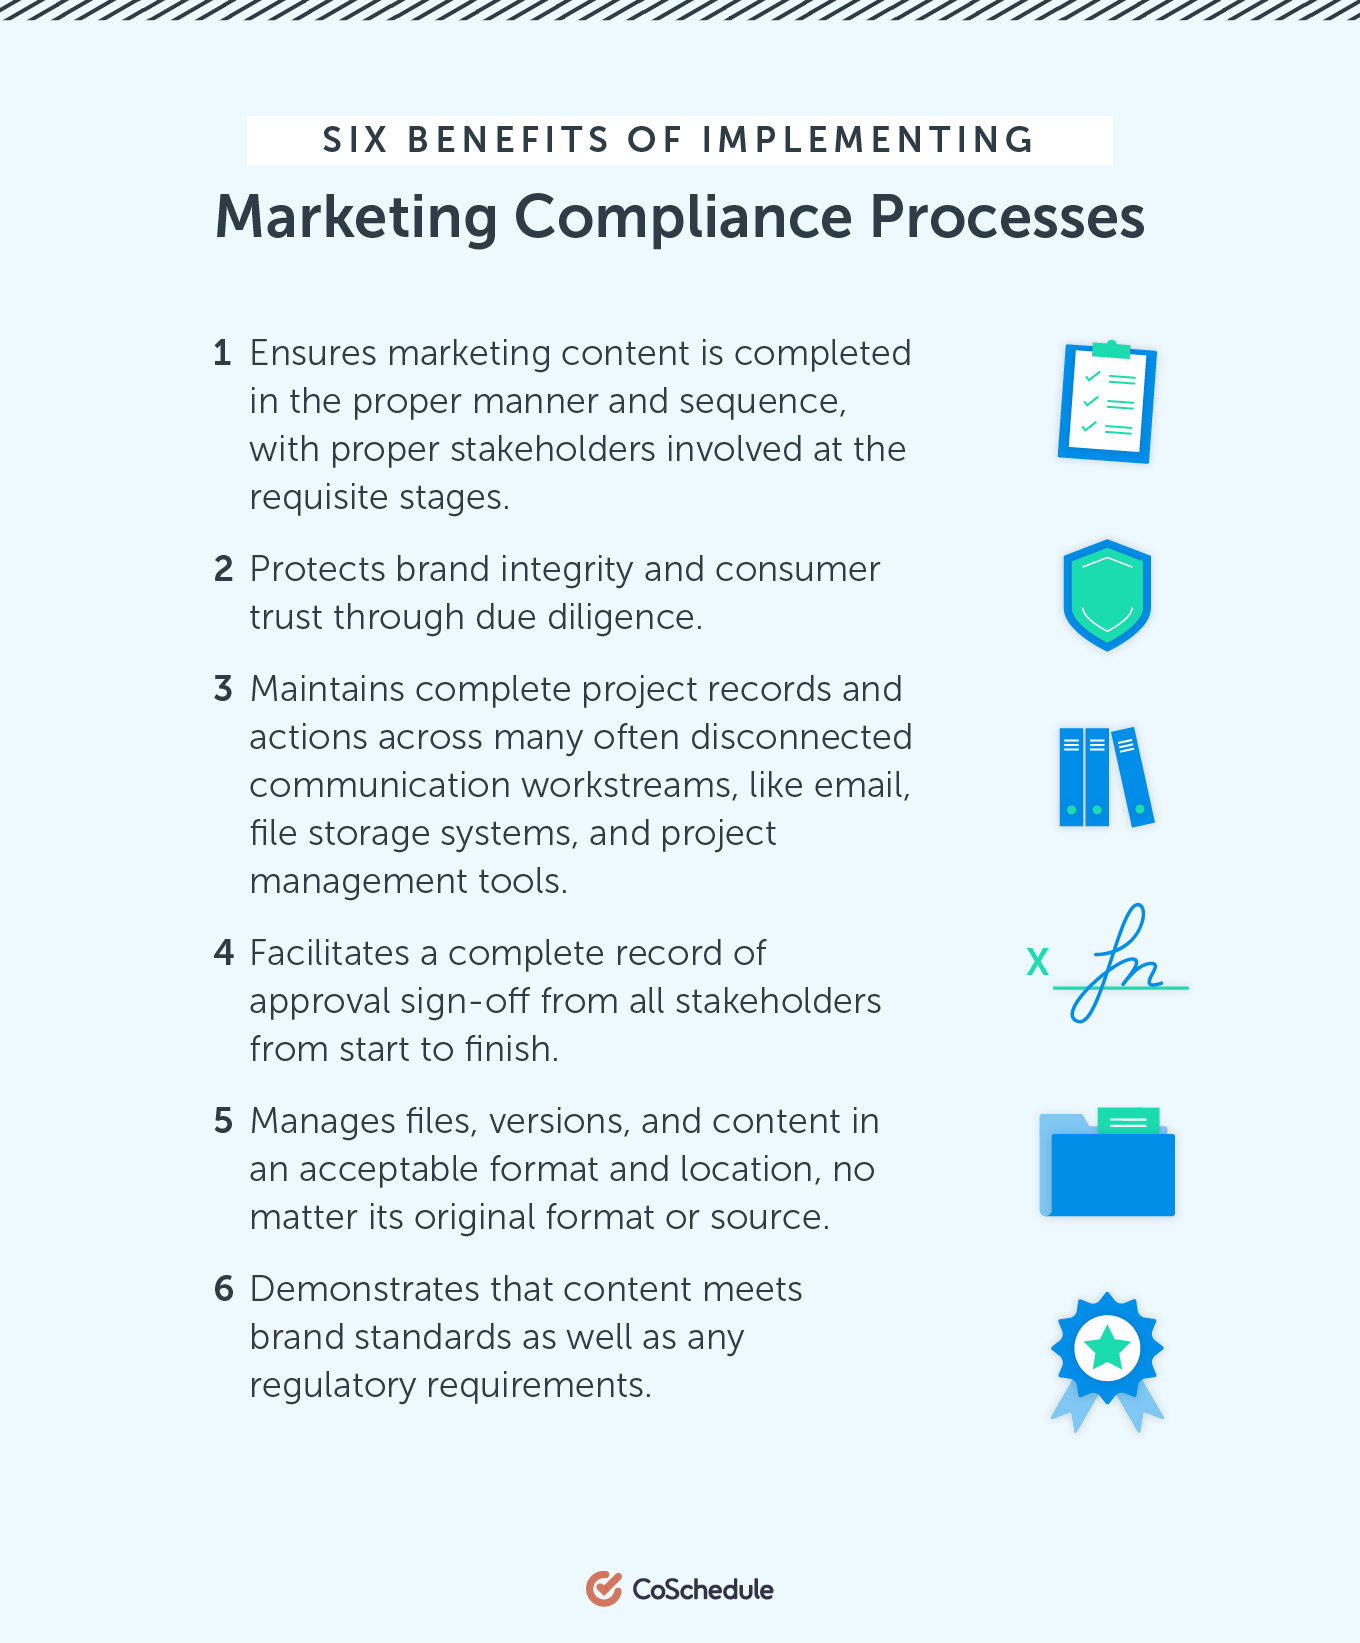 Six Benefits of Implementing Marketing Compliance Processes